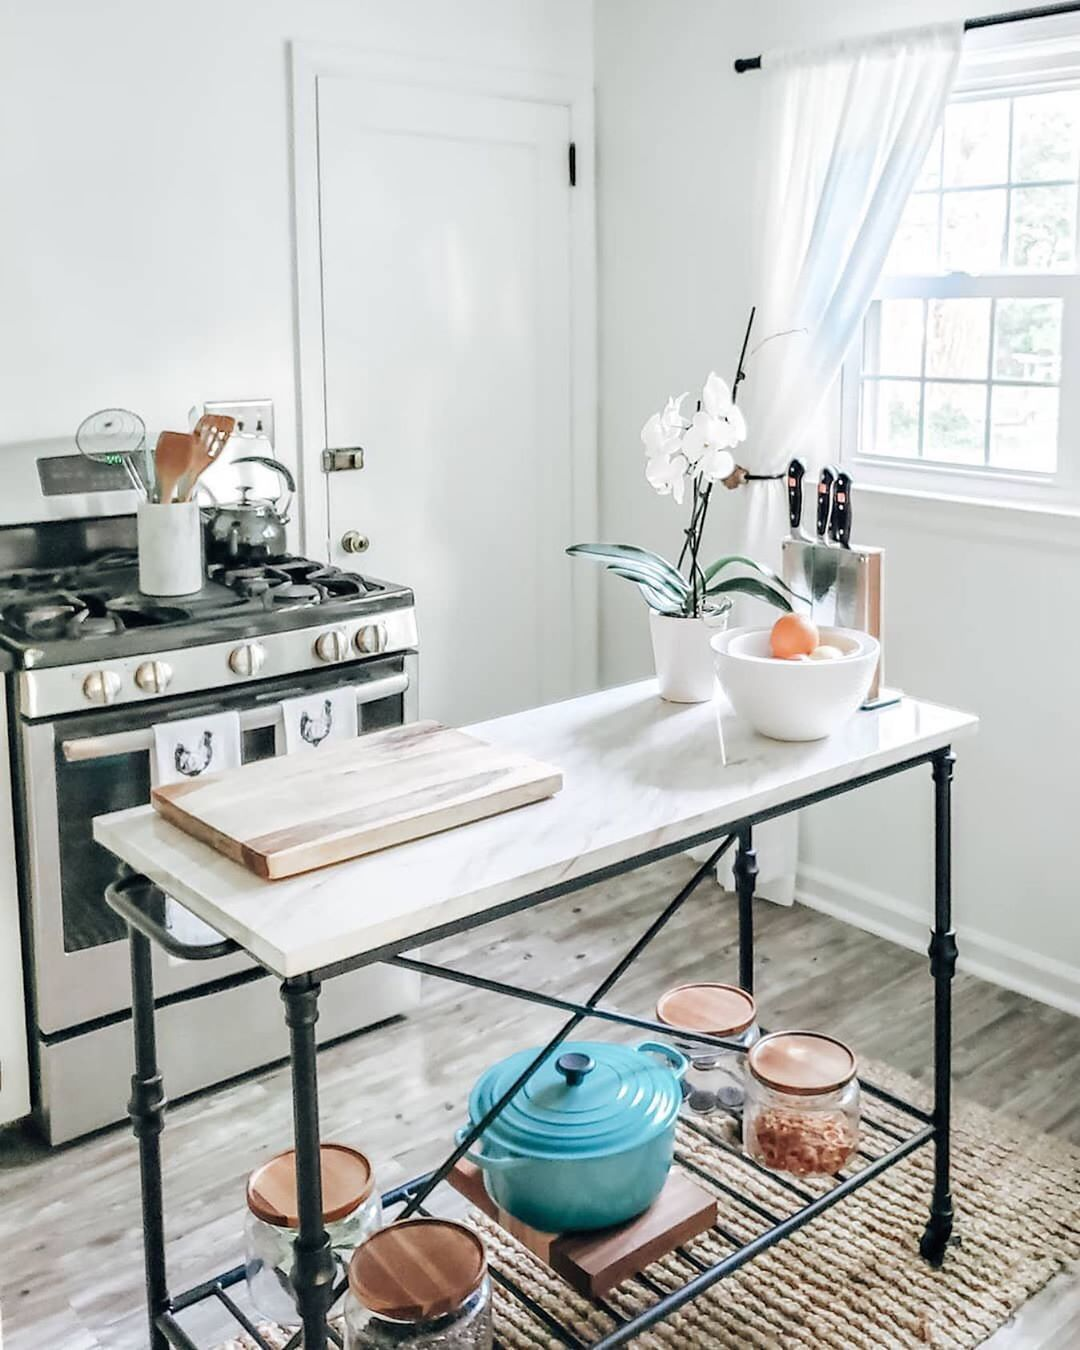 Crate And Barrel On Instagram Our Elegant Marble Top Island Translates French Style Into A Timeless French Kitchen Table Kitchen Design Small French Kitchen